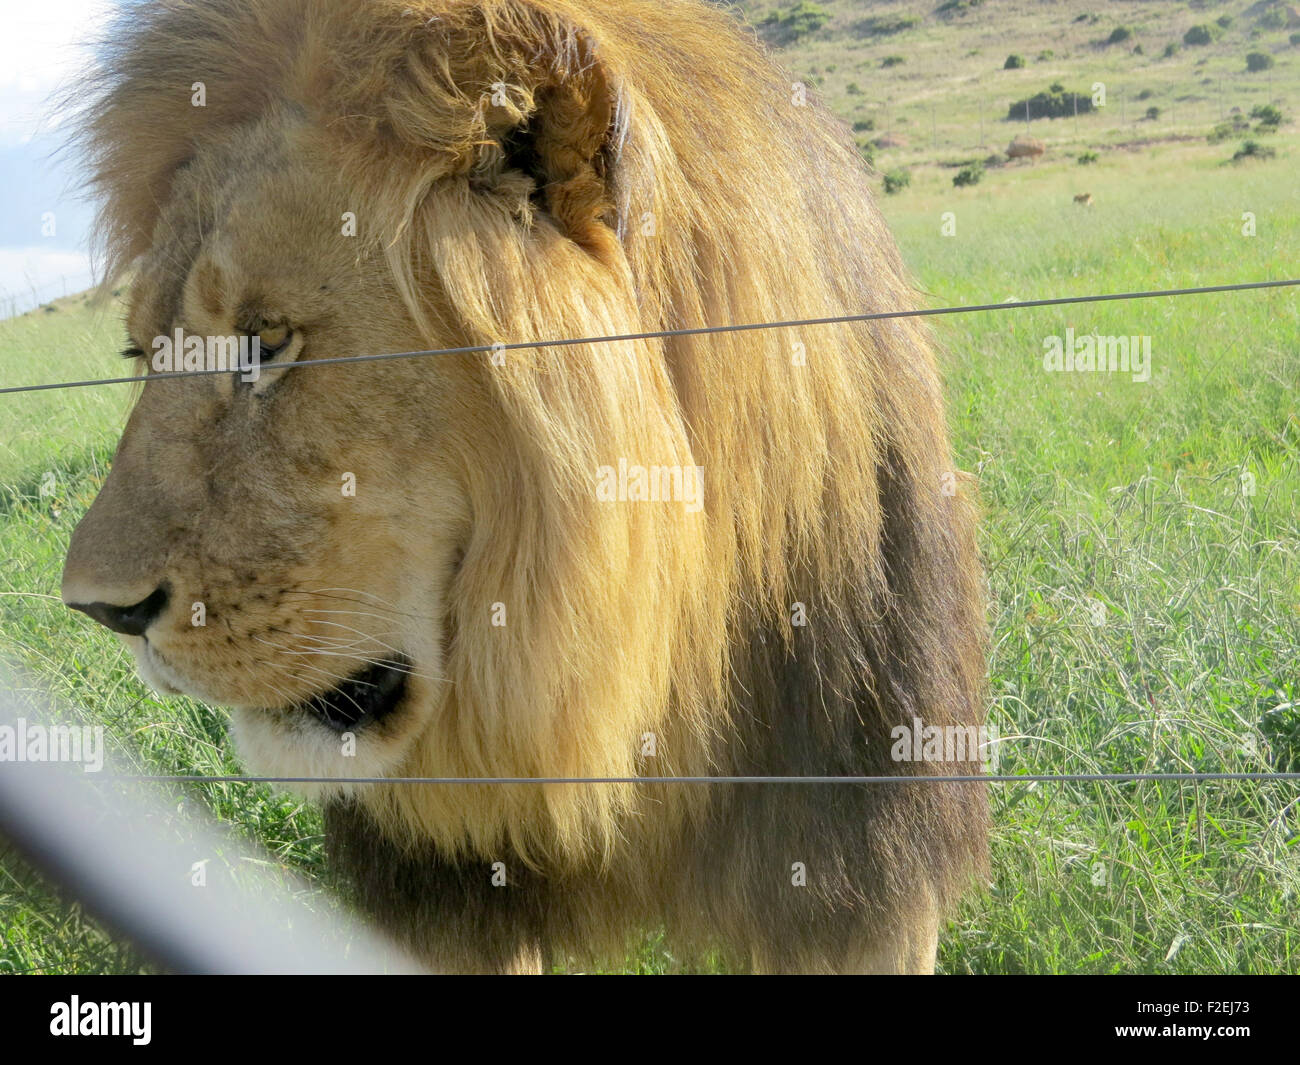 A lion is seen at the Moreson Ranch, a lion breeding ranch in Vrede, South Africa, 10 January 2015. Photo: Sinikka - Stock Image